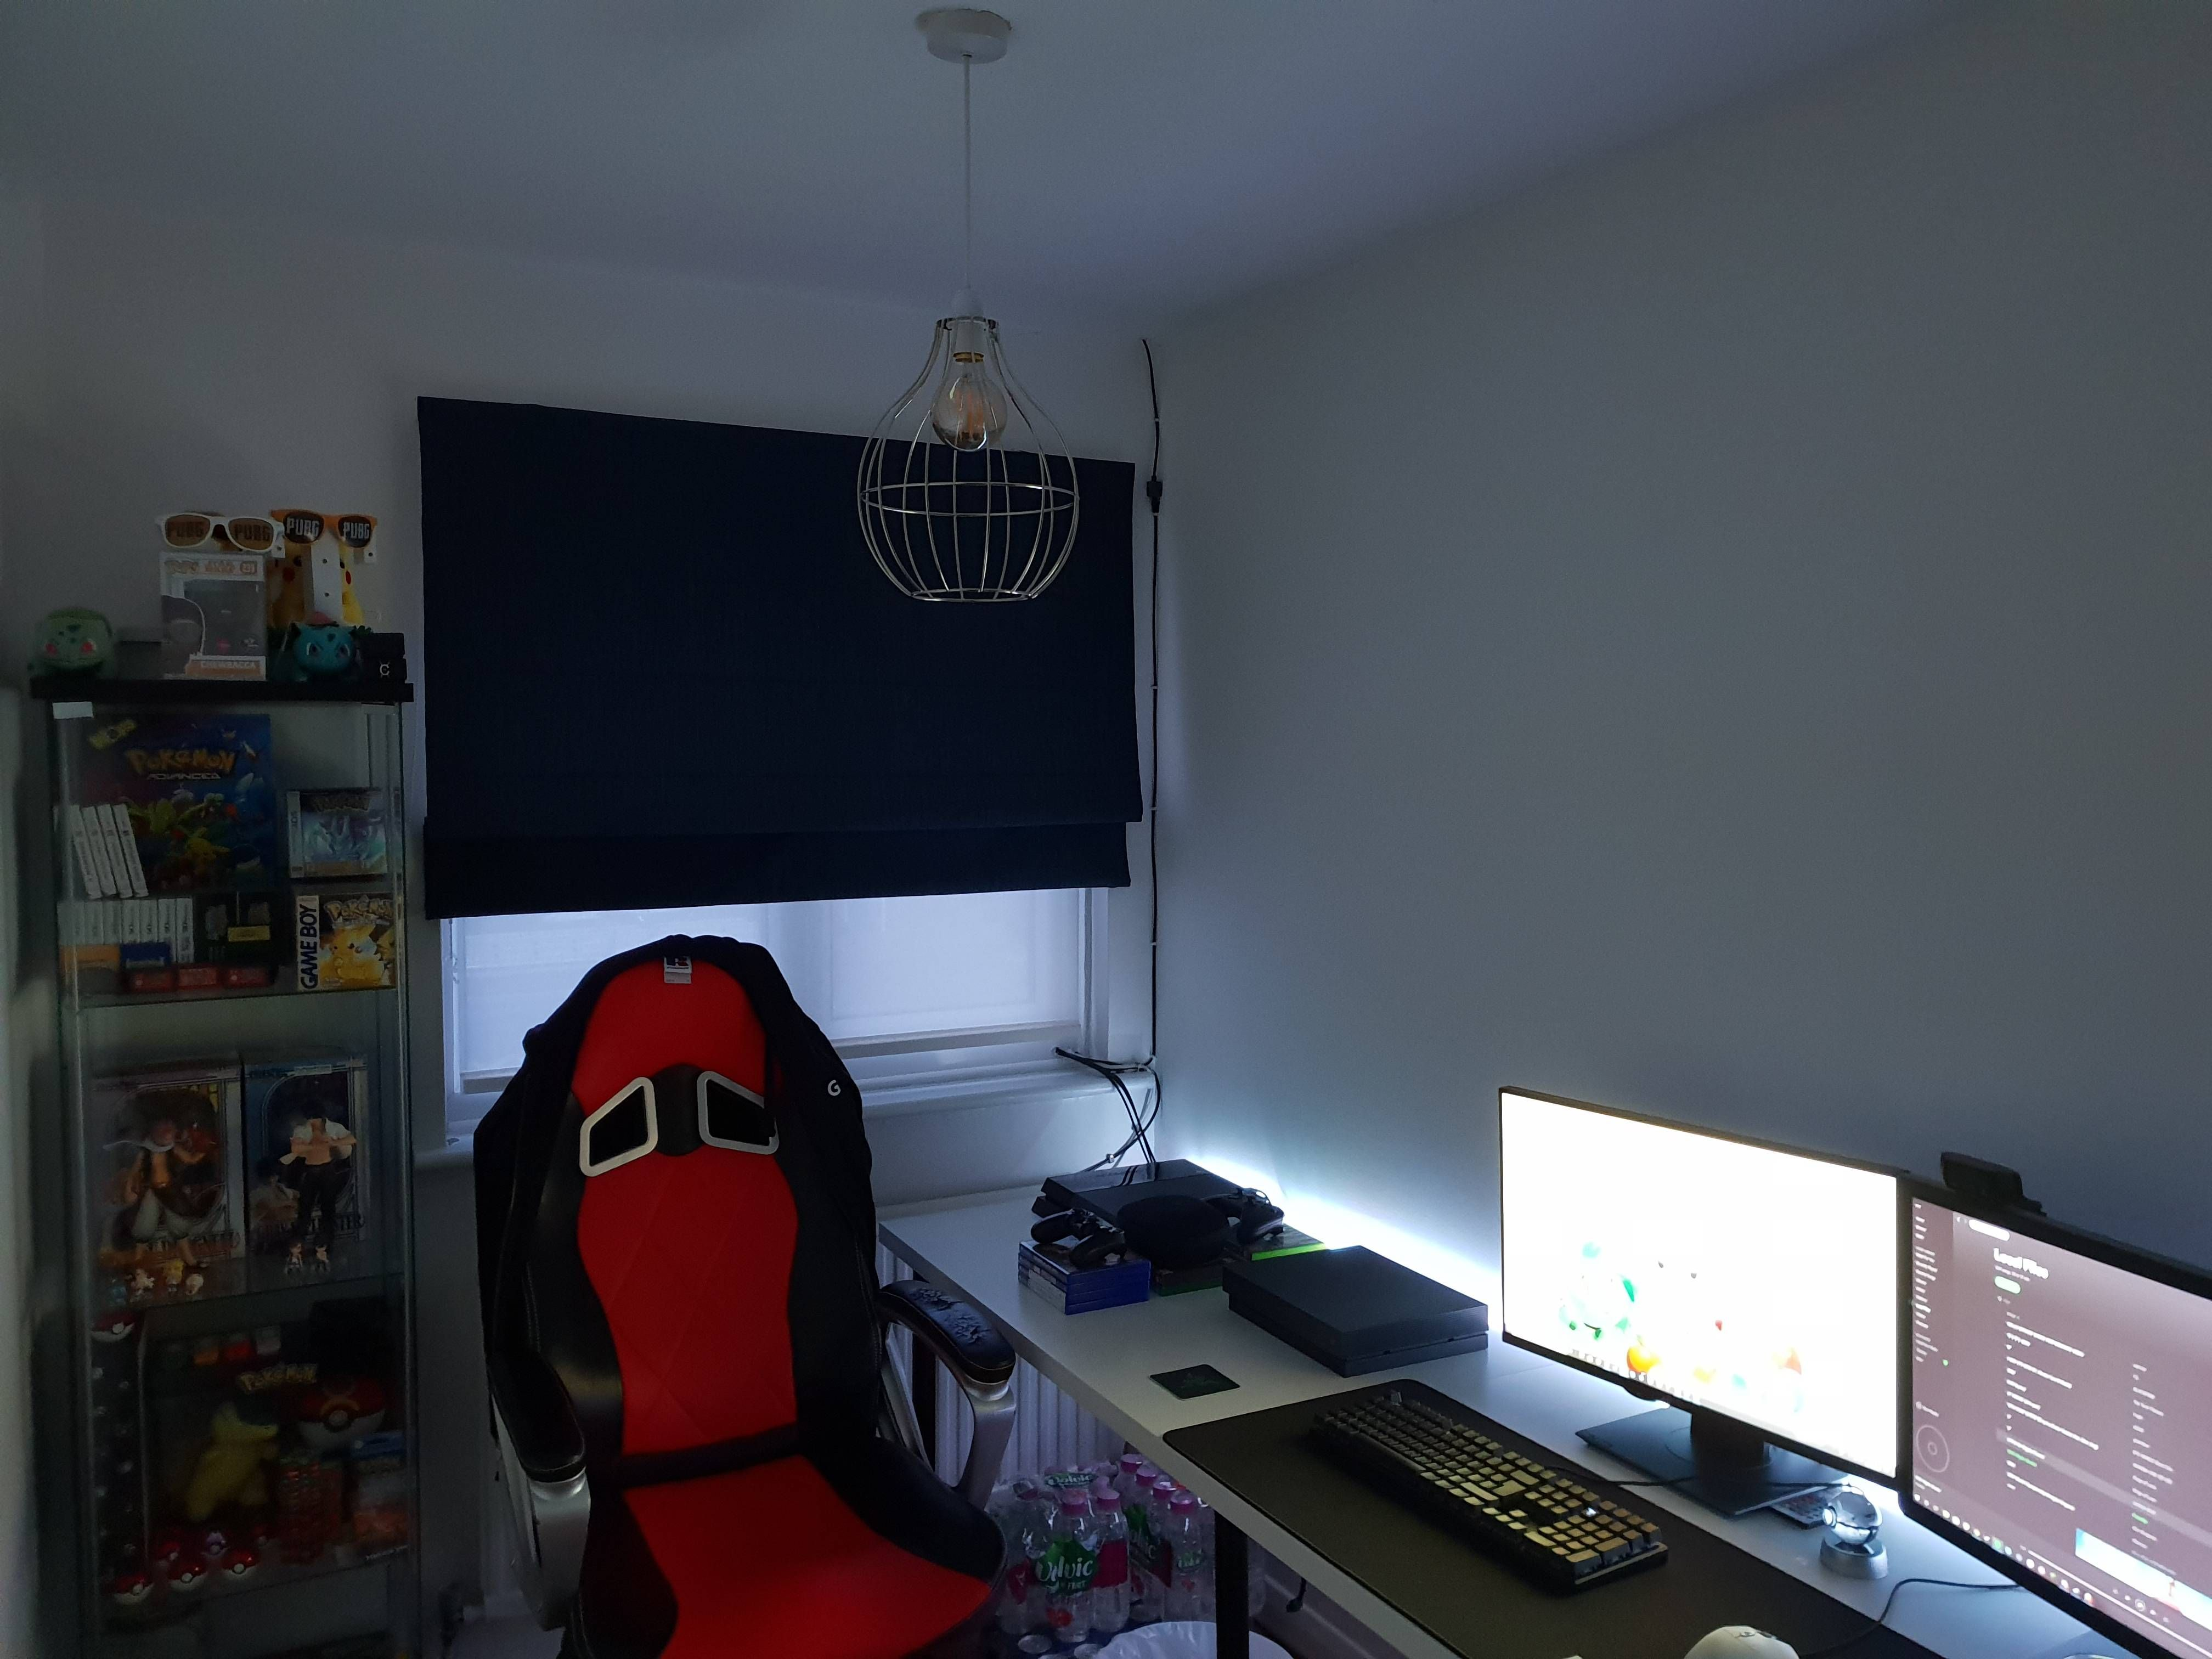 Need Help With Walls / Shelving! All Suggestions Needed